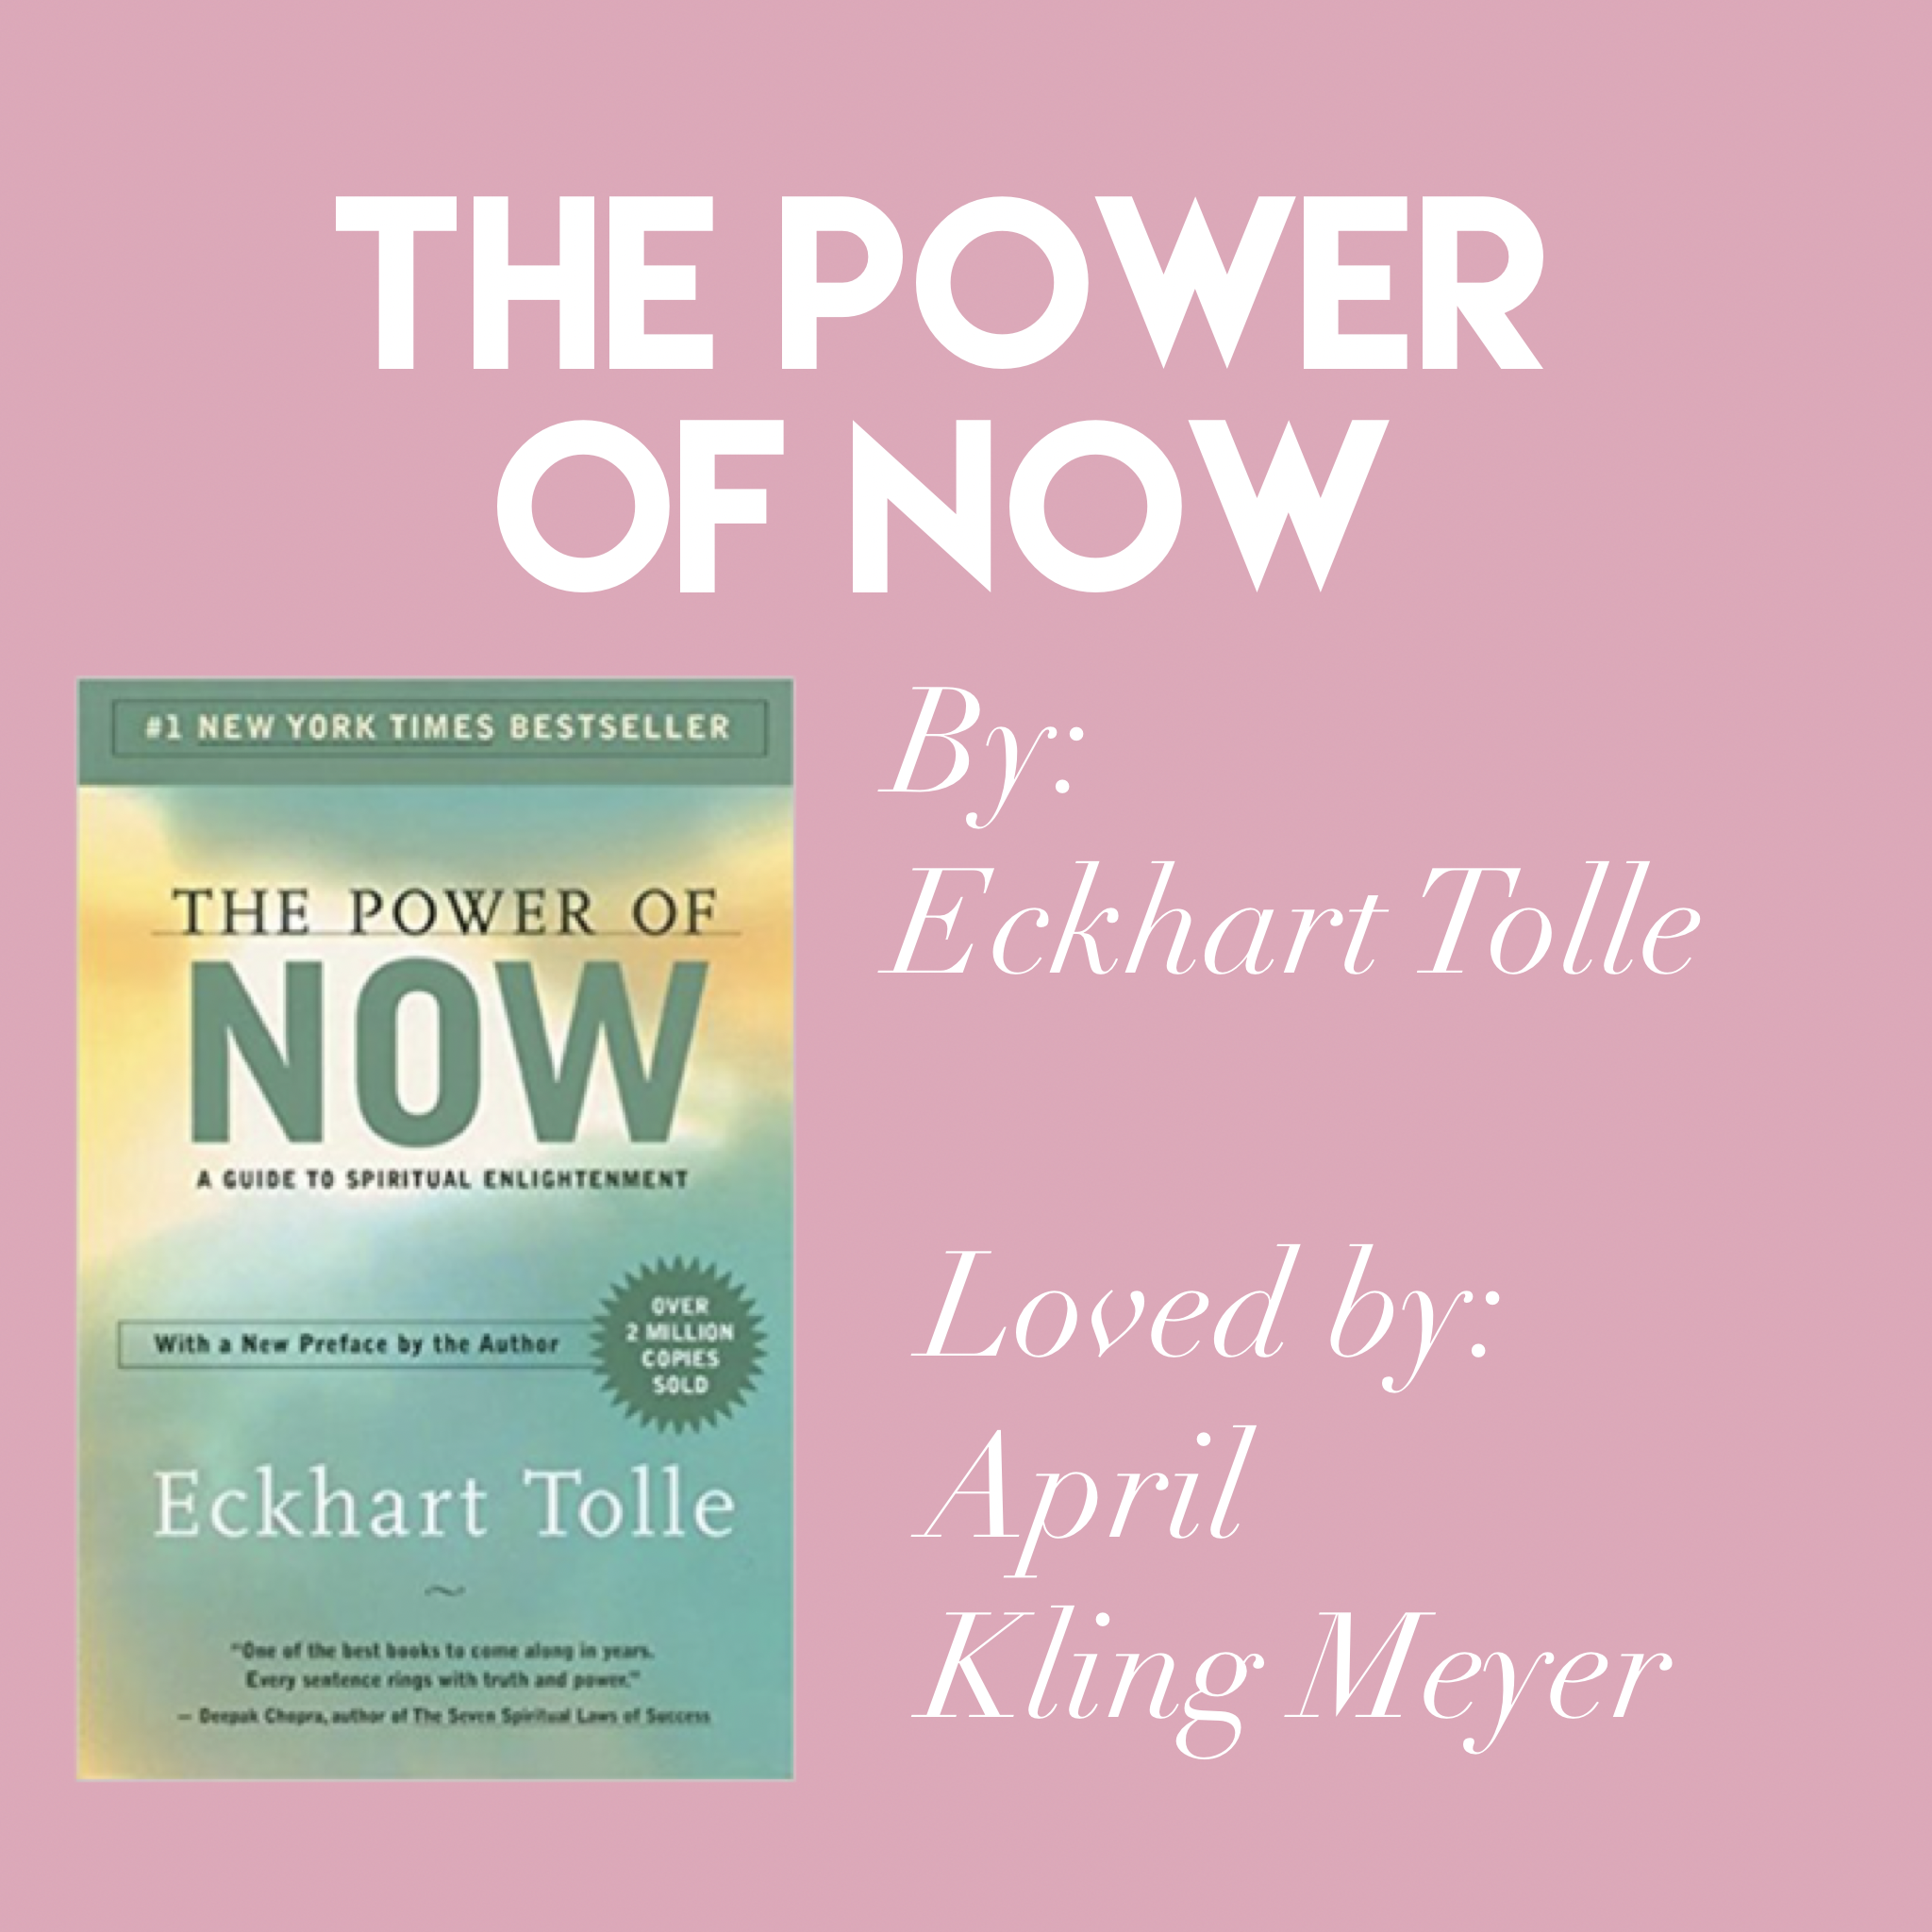 'The Power of Now' by Eckhart Tolle // Loved by April Kling Meyer